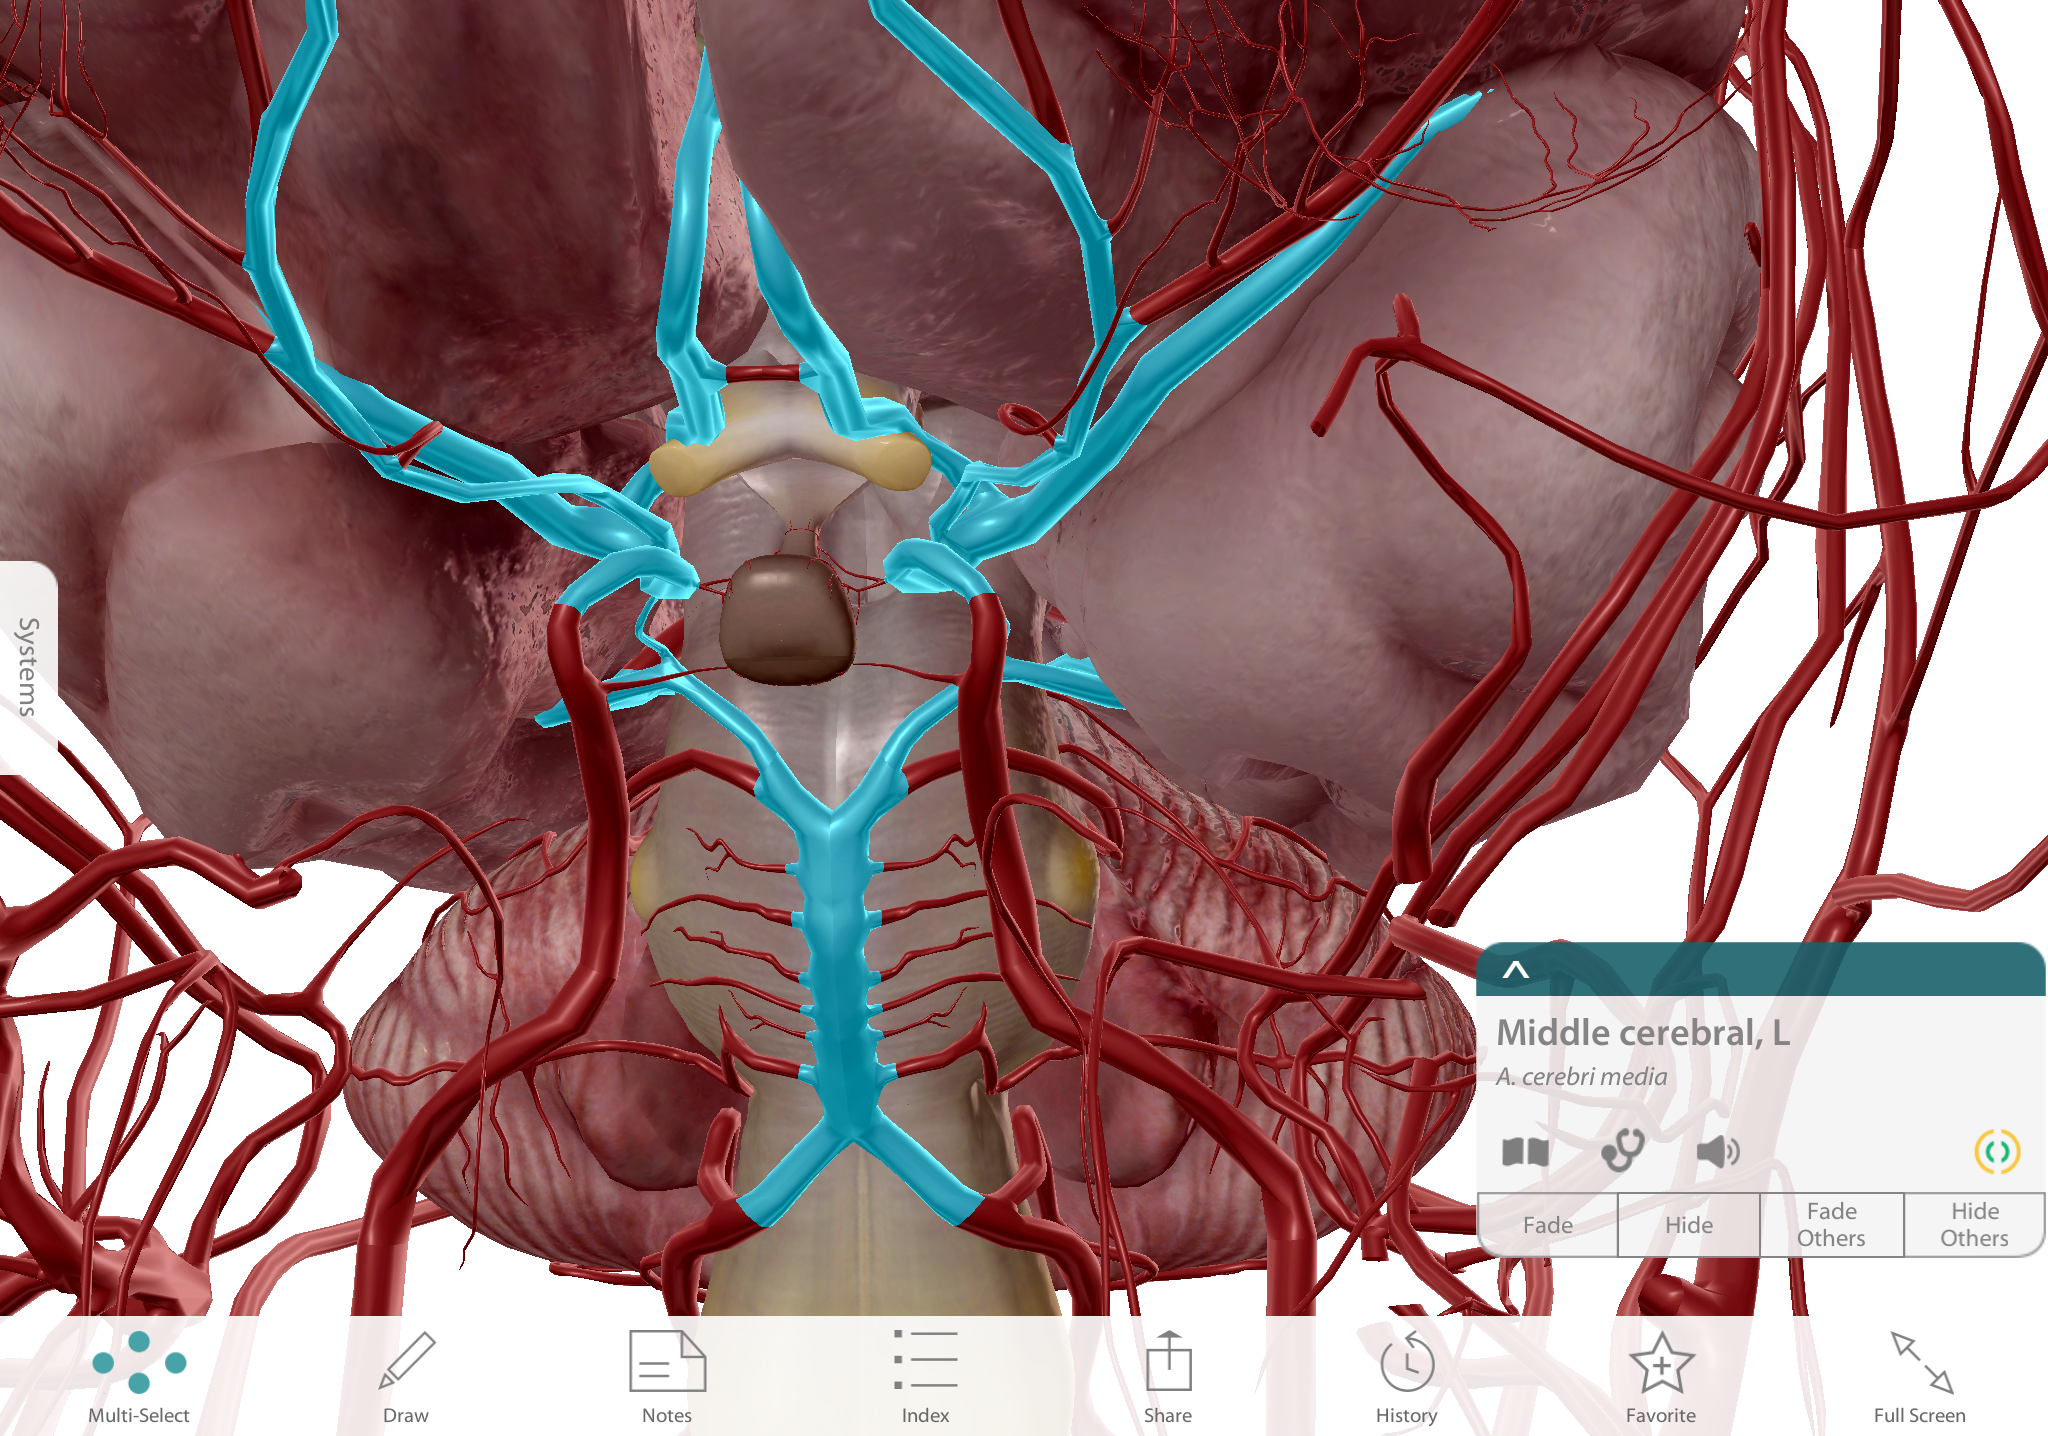 The Circle of Willis in context, with other cerebral vasculature